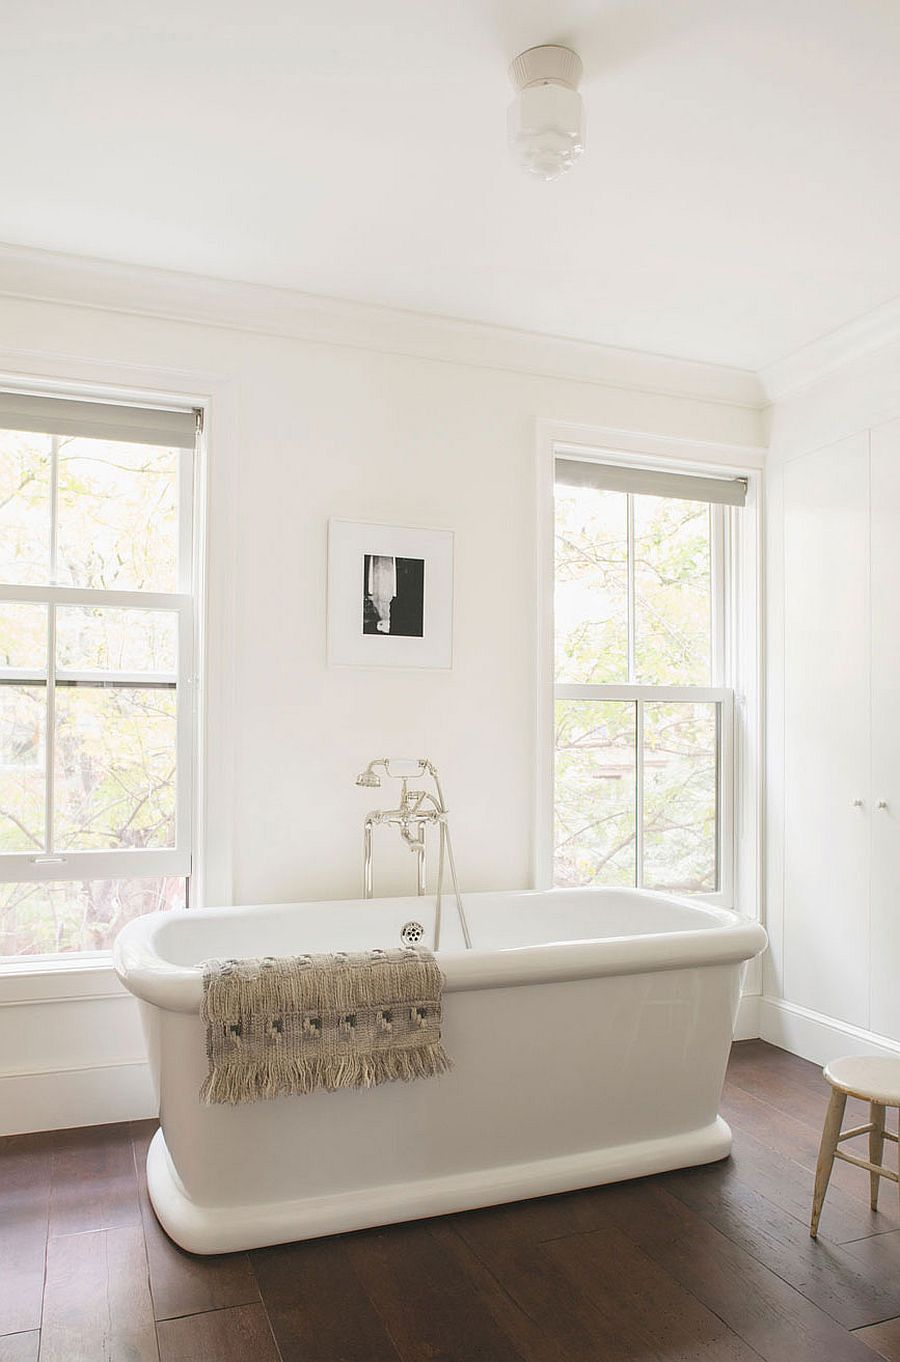 Bathtub in white creates a relaxing, all-white bathroom